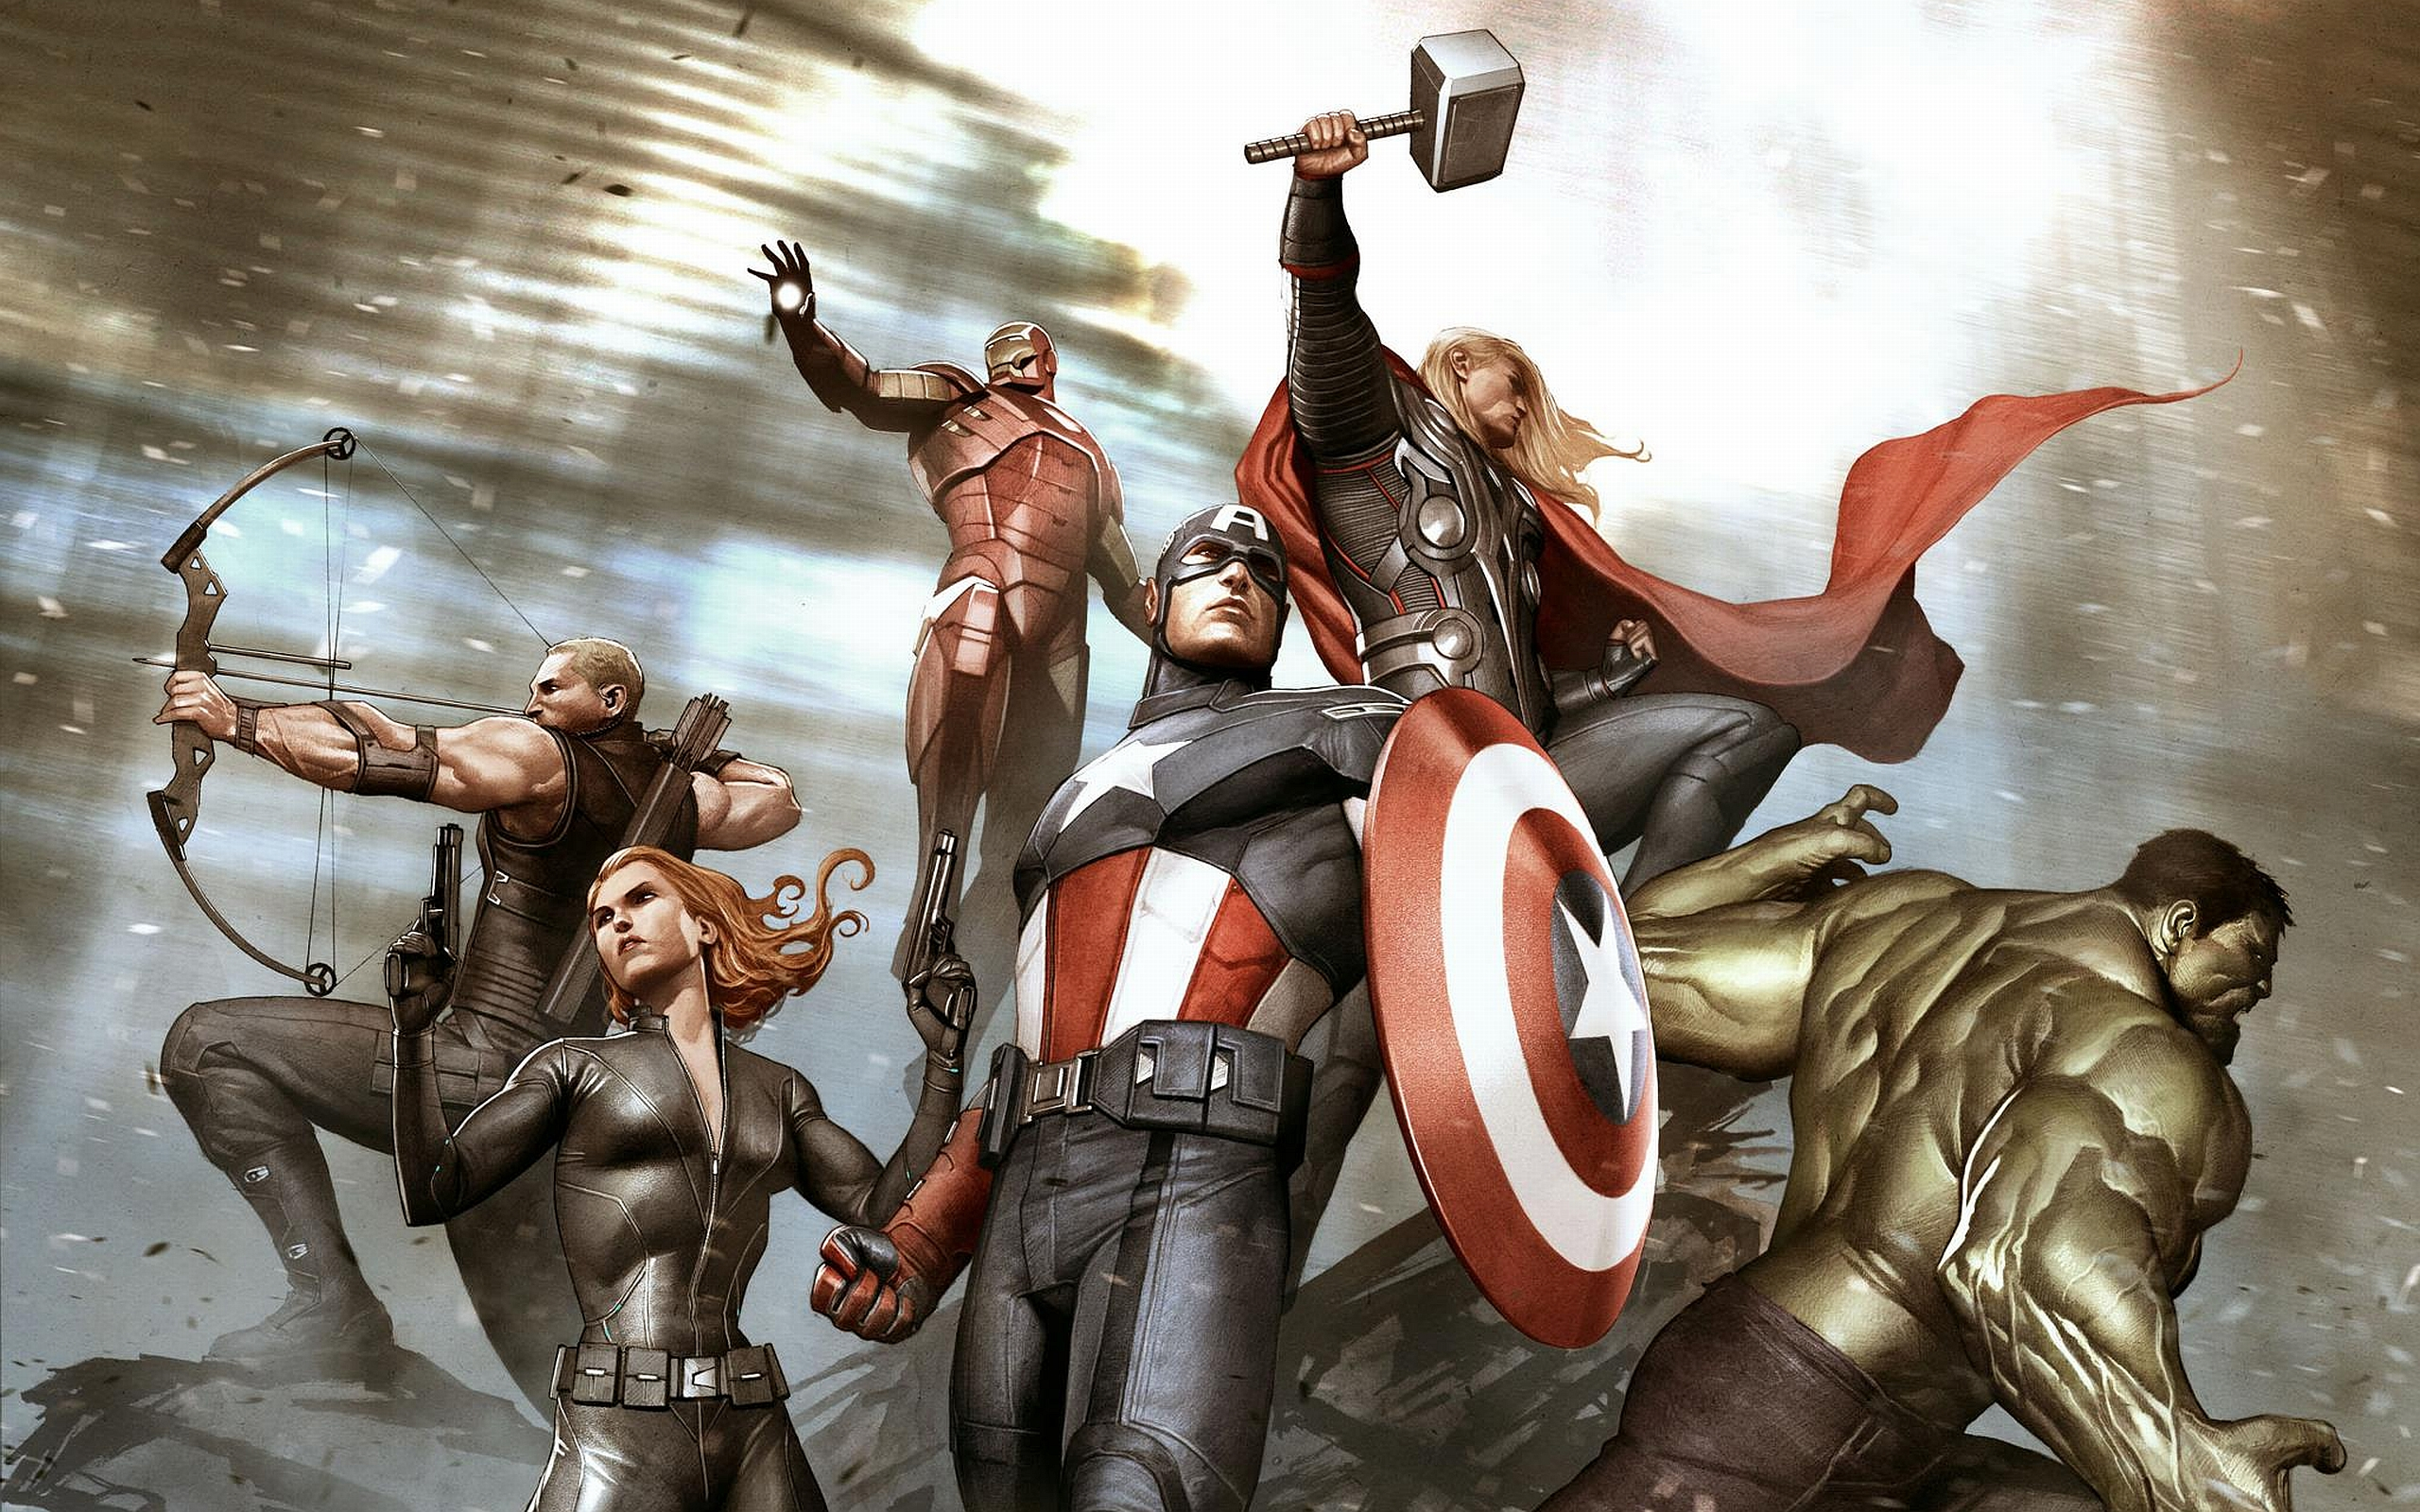 Comics Avengers Best Quality Awesome Wallpapers All Hd Wallpapers